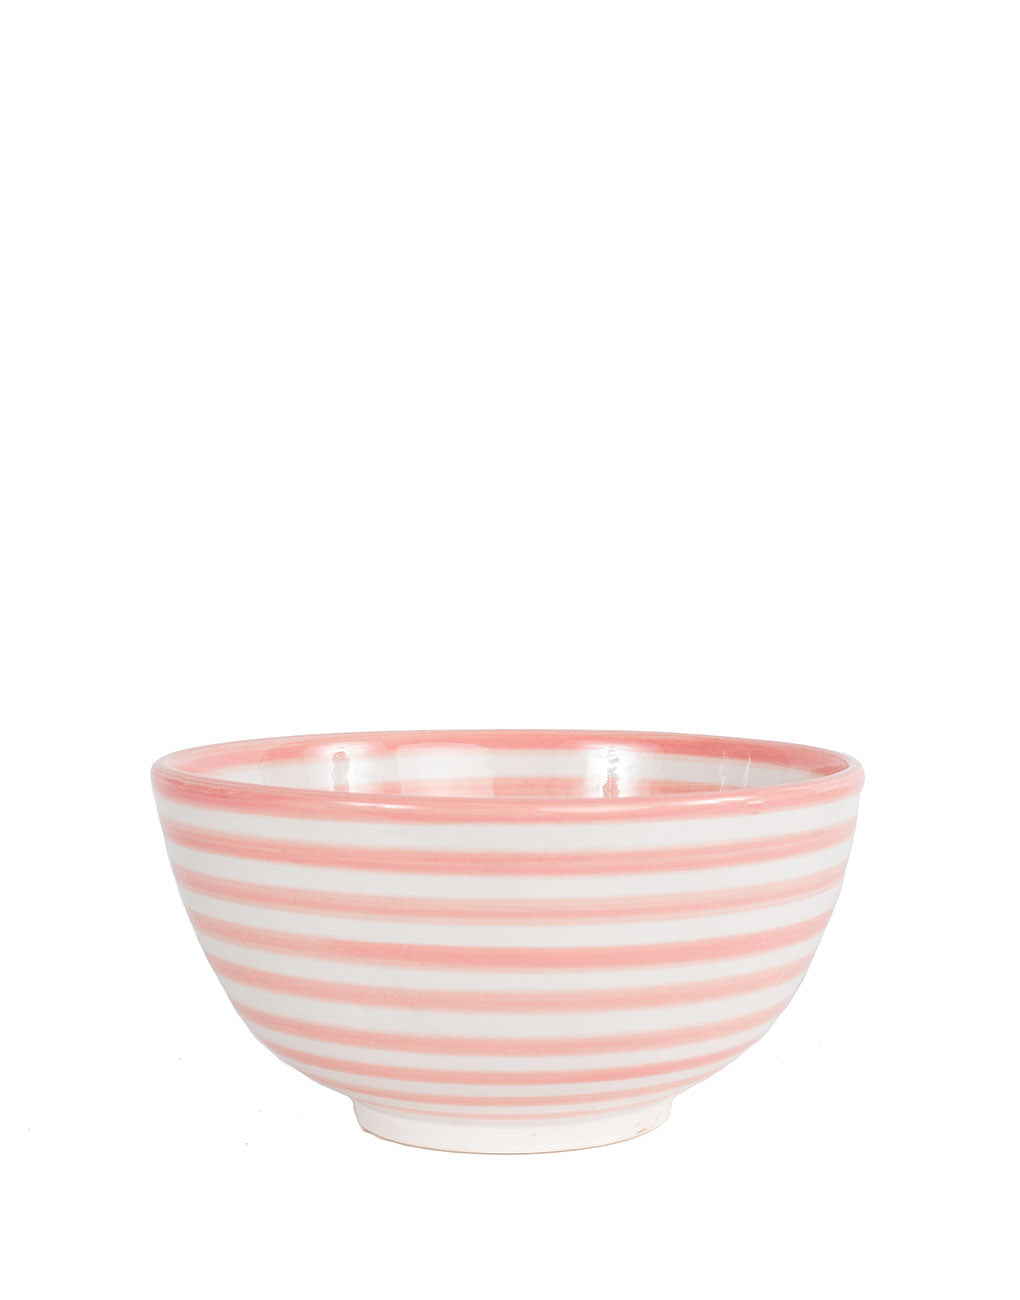 Ceramic Salad Bowl - Blush Stripe | The Little Market